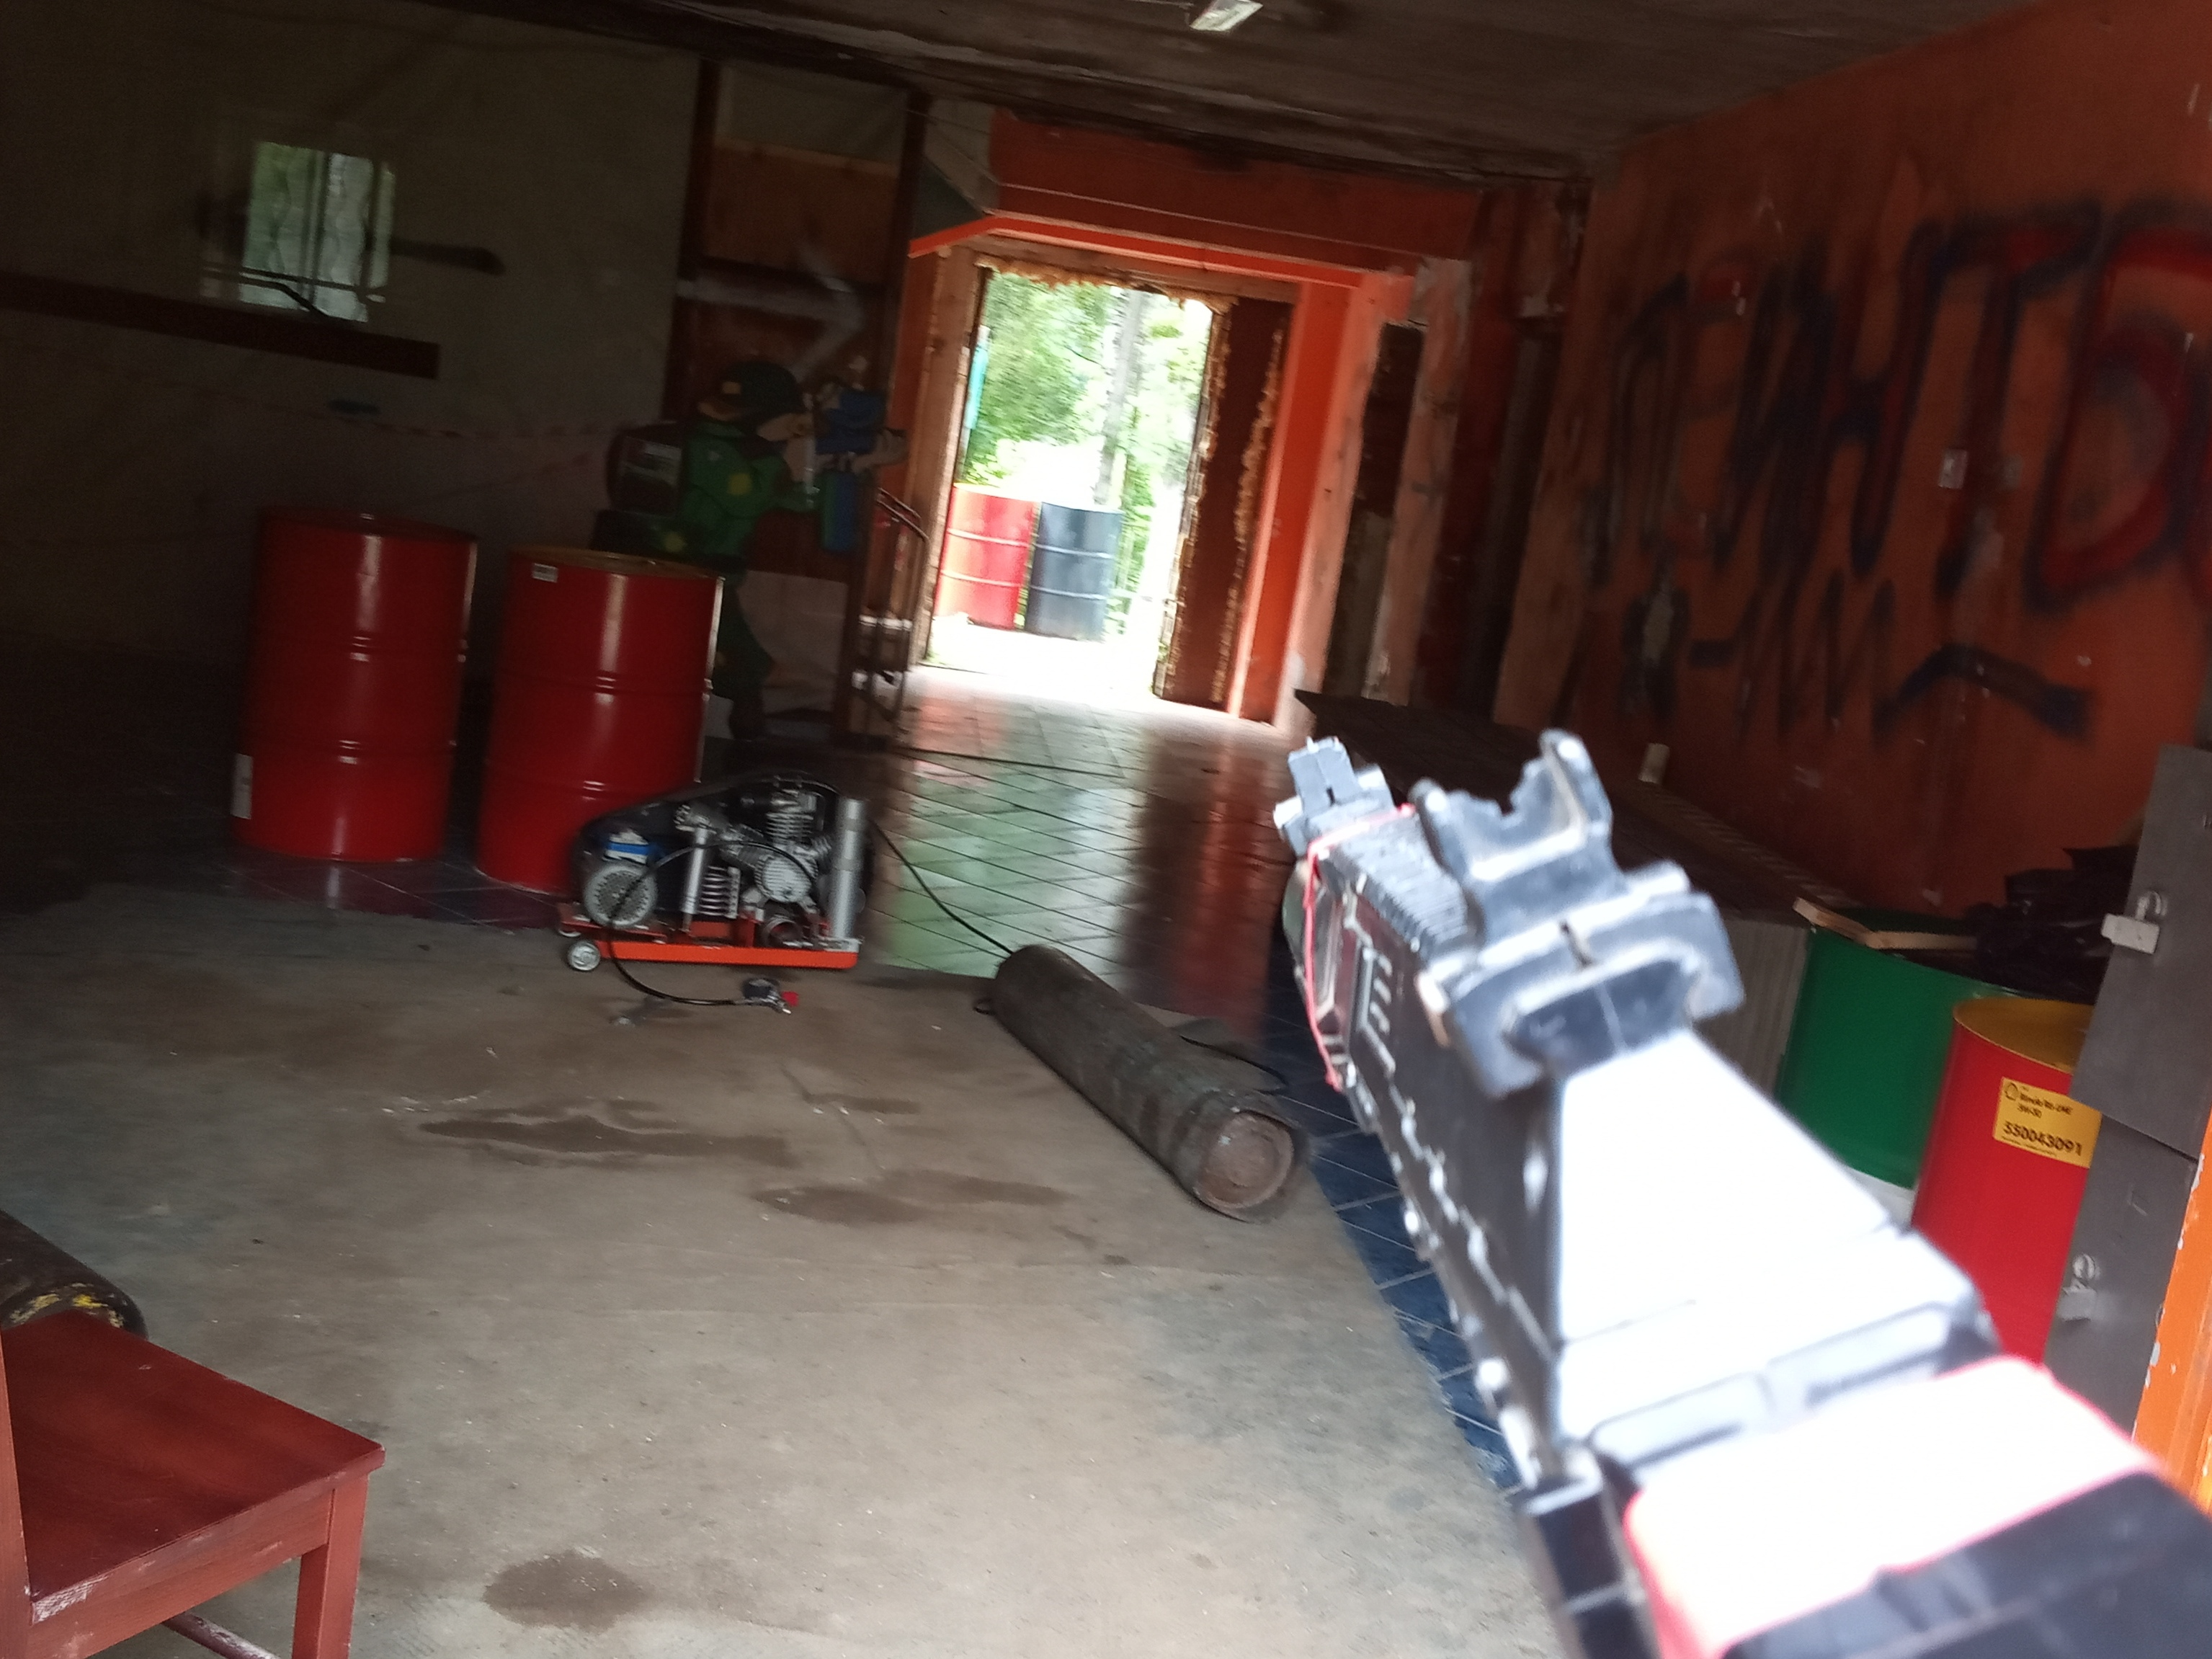 https://paintballclub.ru/wp-content/uploads/2019/07/IMG_20190712_135041.jpg